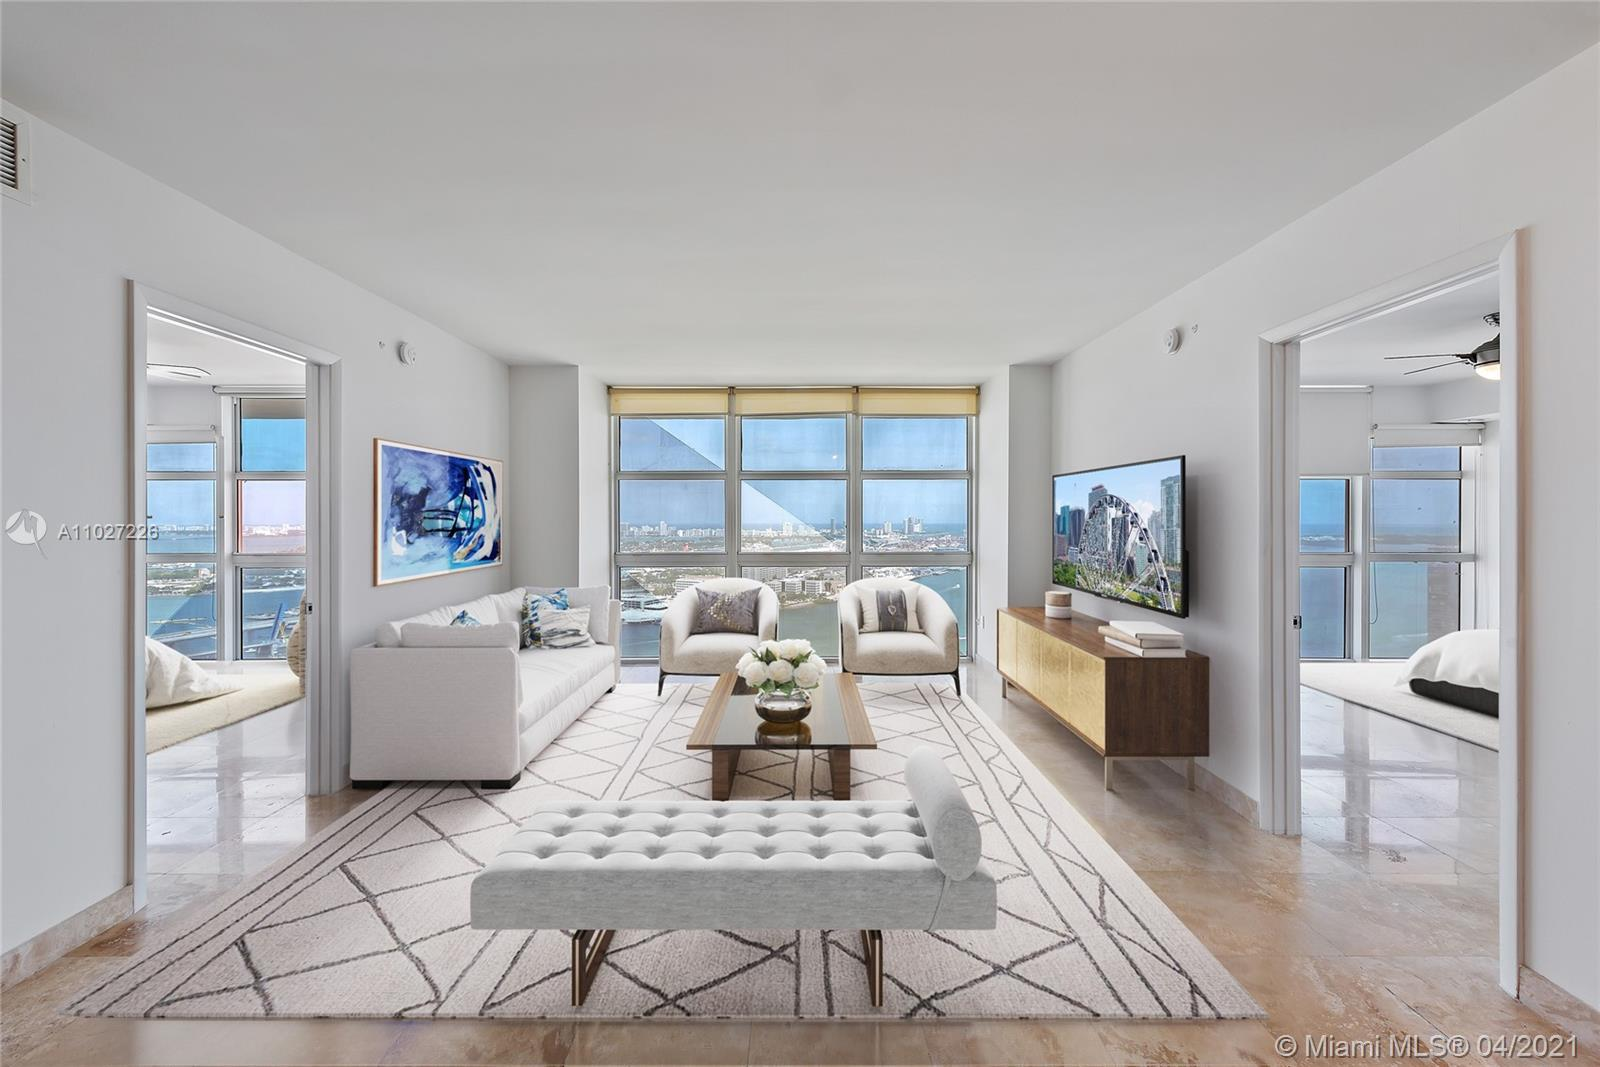 A metropolitan oasis at 50 Biscayne! Residence 4106 features 2 bedrooms + den, 2 baths, travertine f